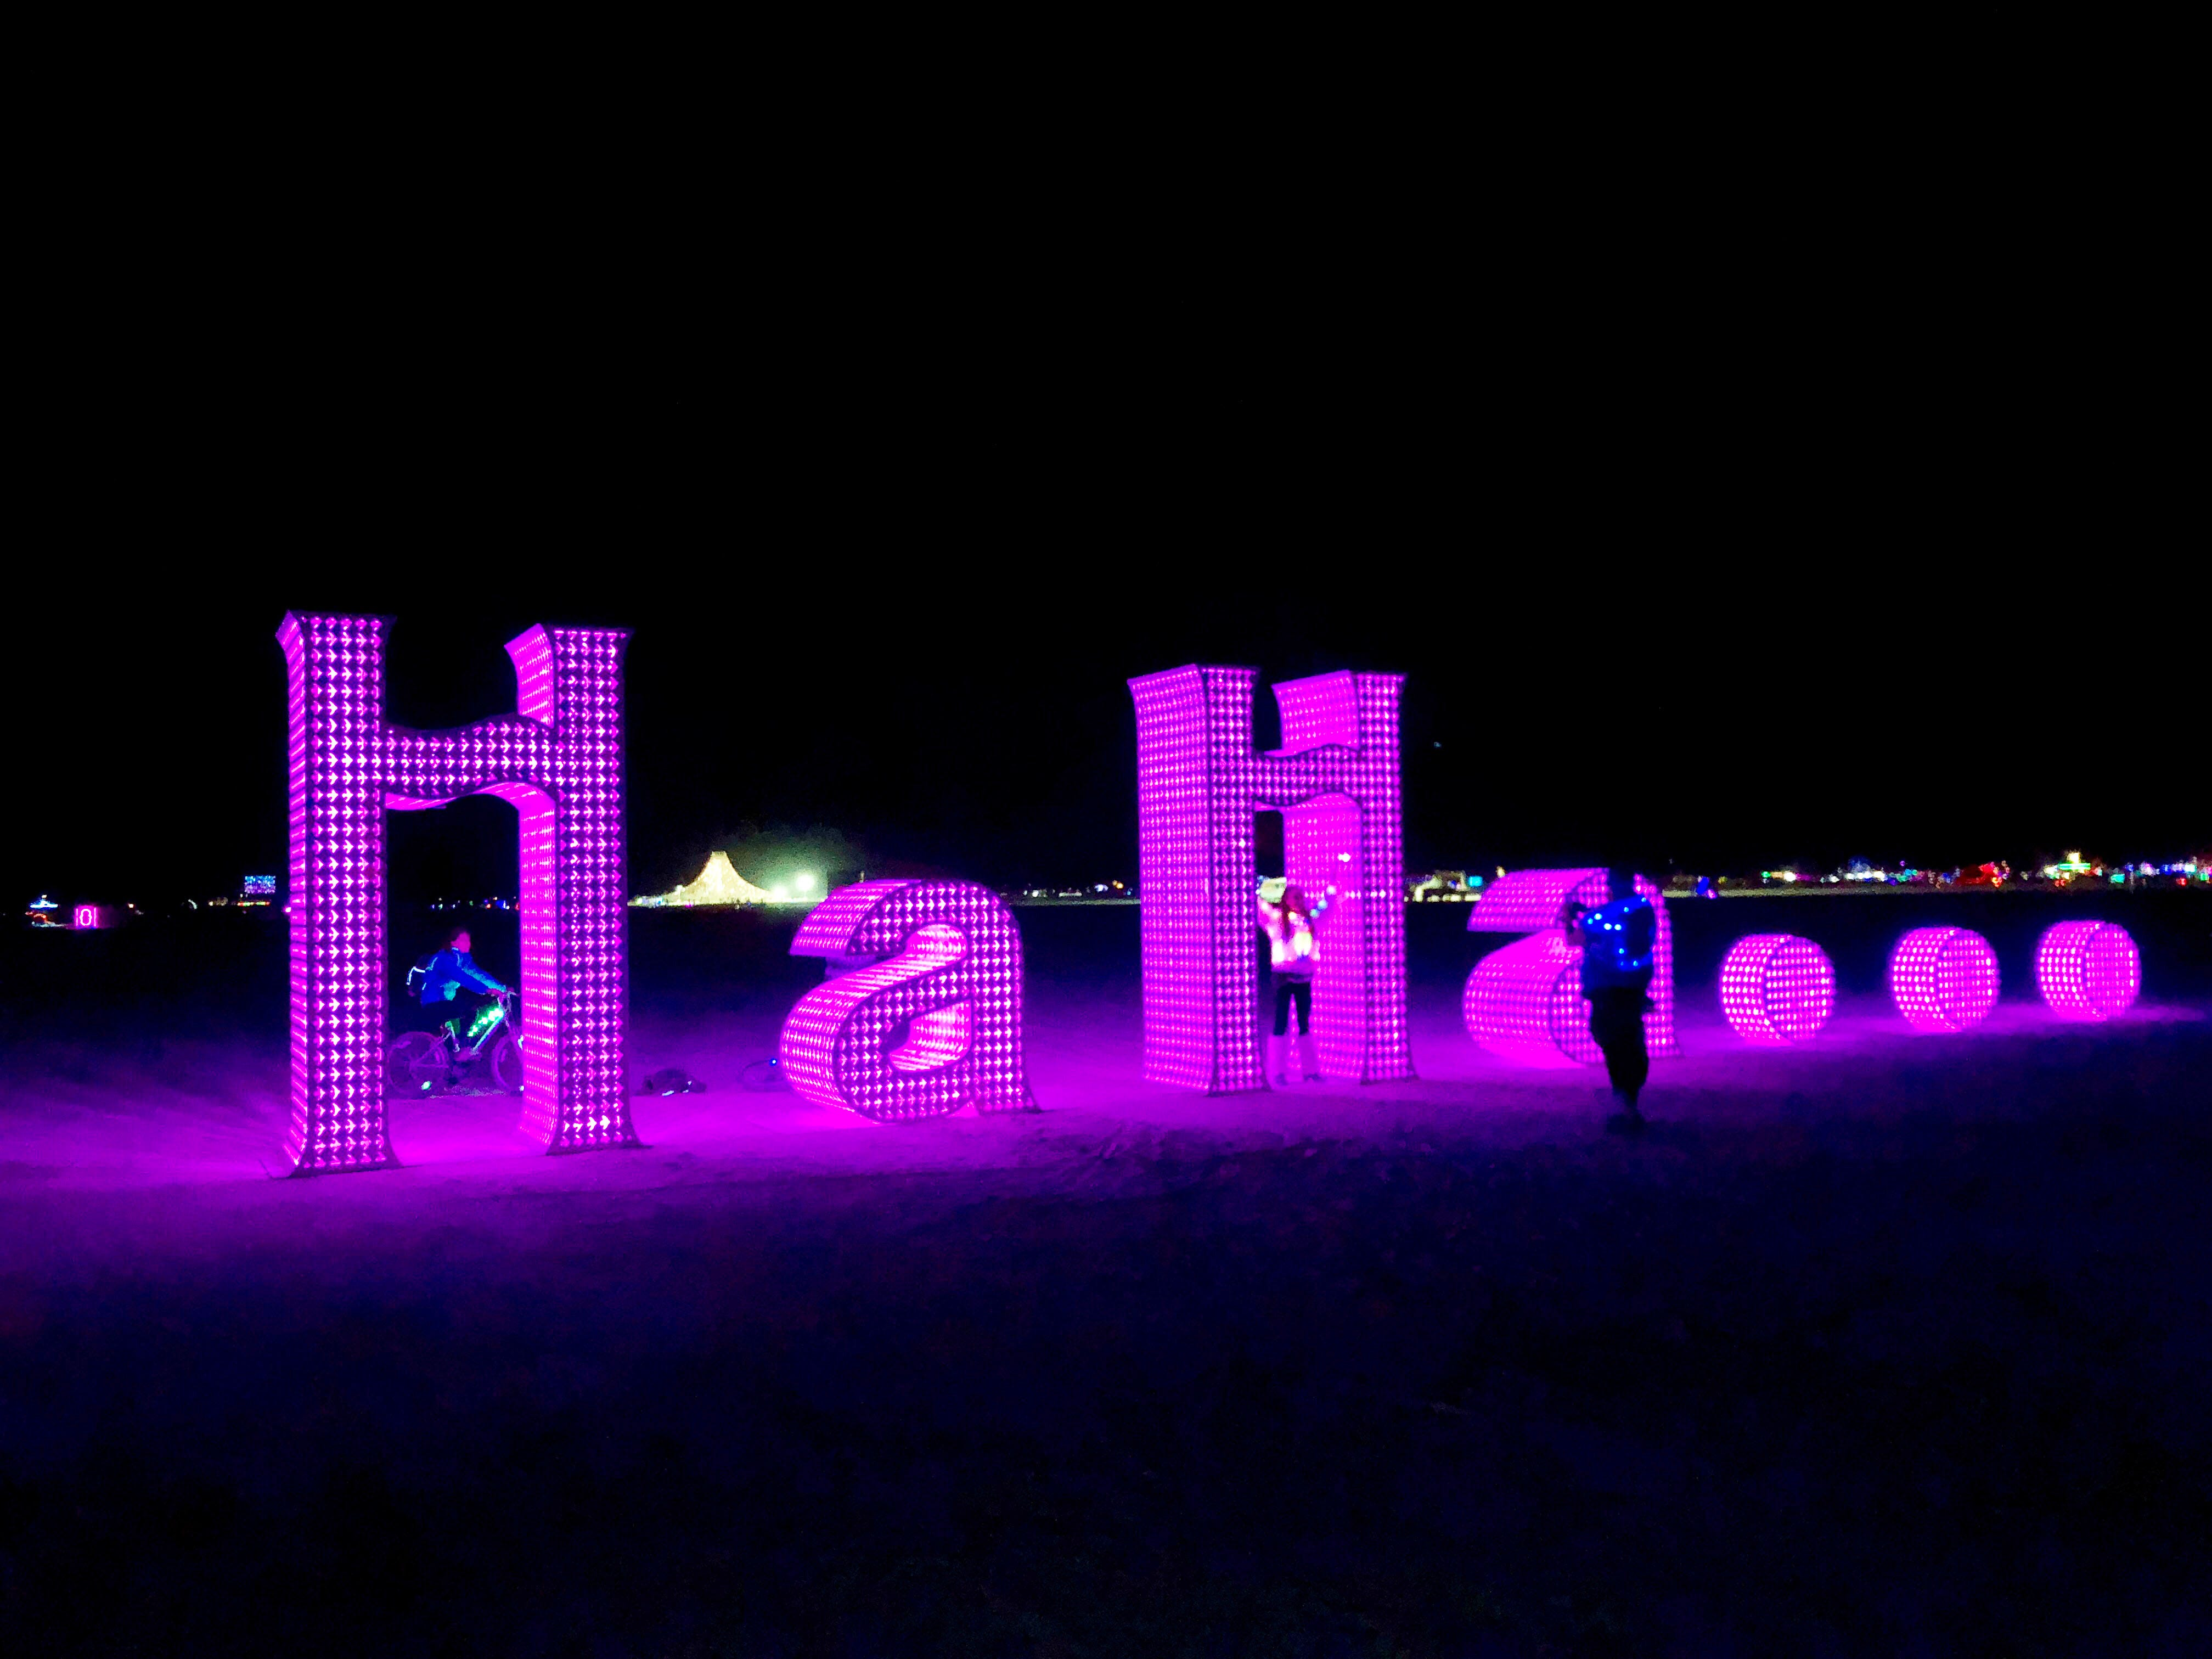 An illuminated art installation at Burning Man echoes a common texting phrase.